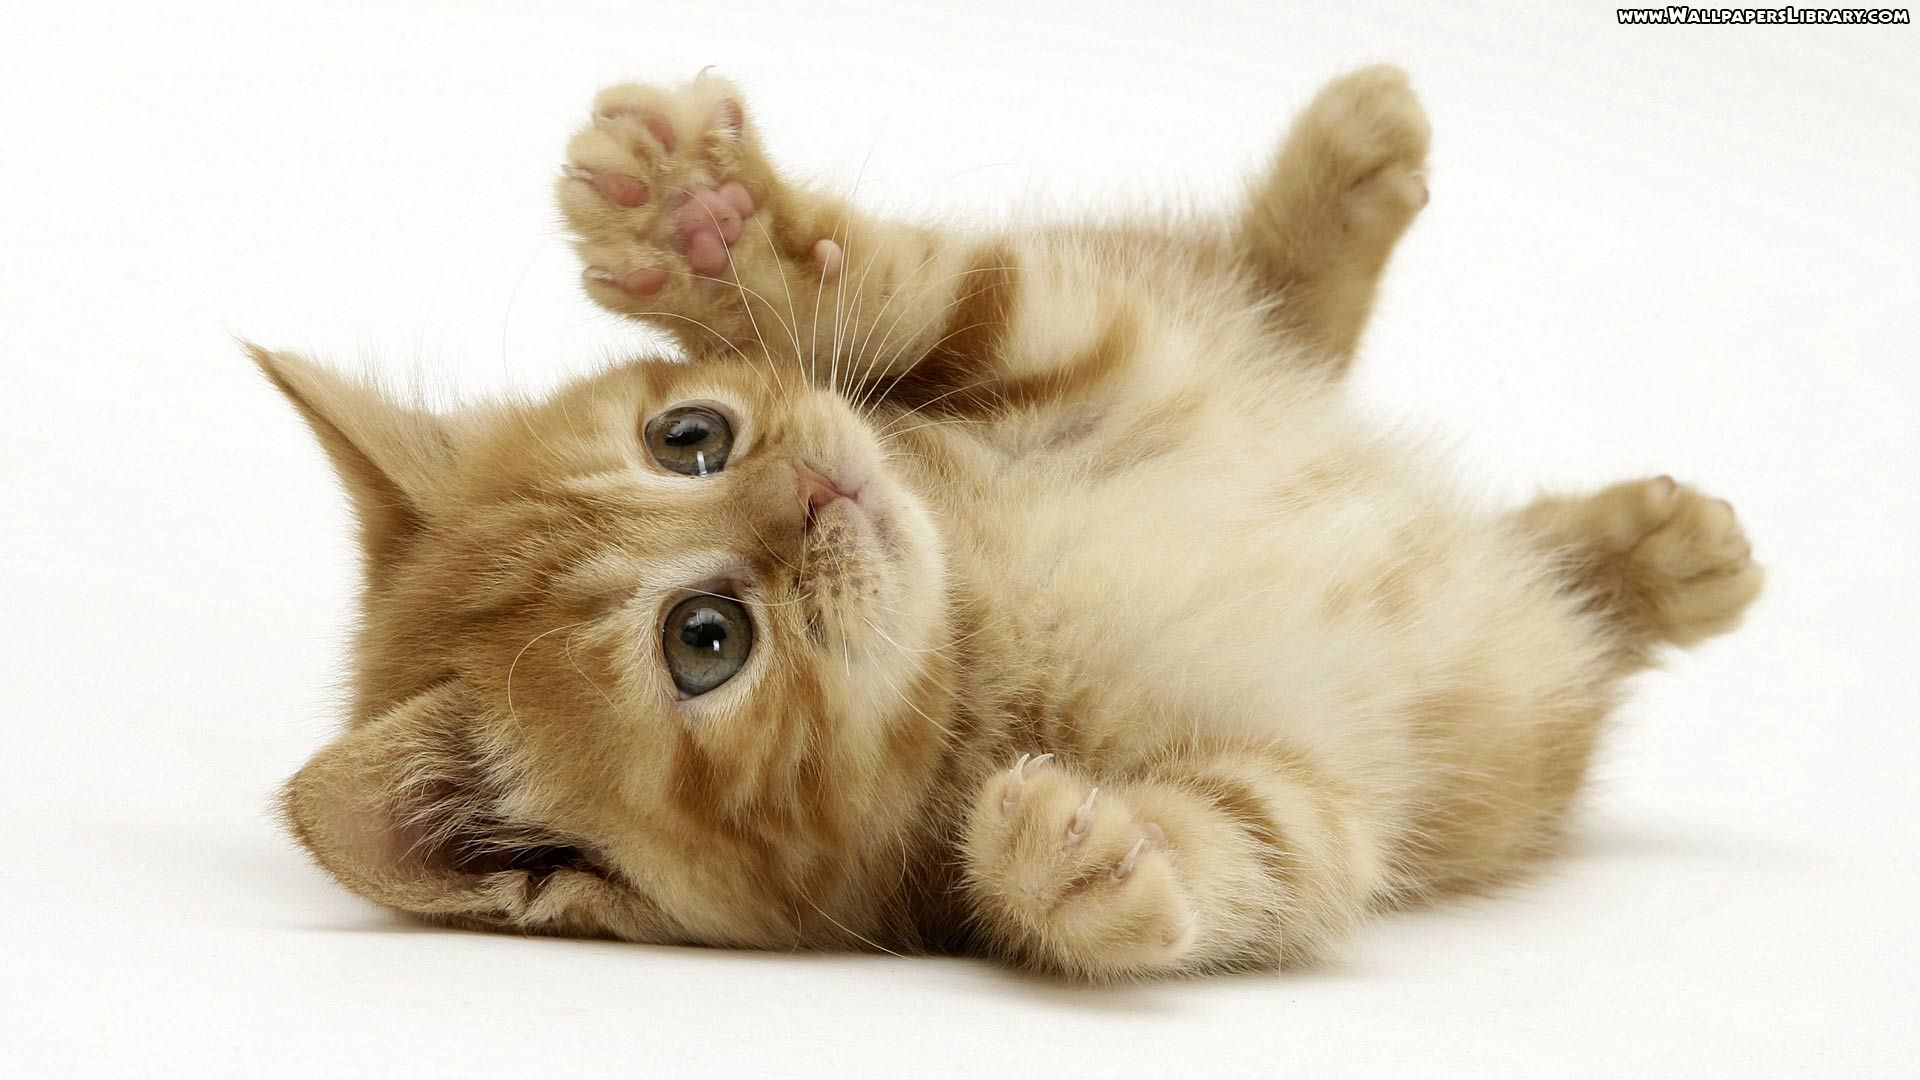 Cute kitten wallpaper android apps on google play hd wallpapers cute kitten wallpaper android apps on google play thecheapjerseys Choice Image